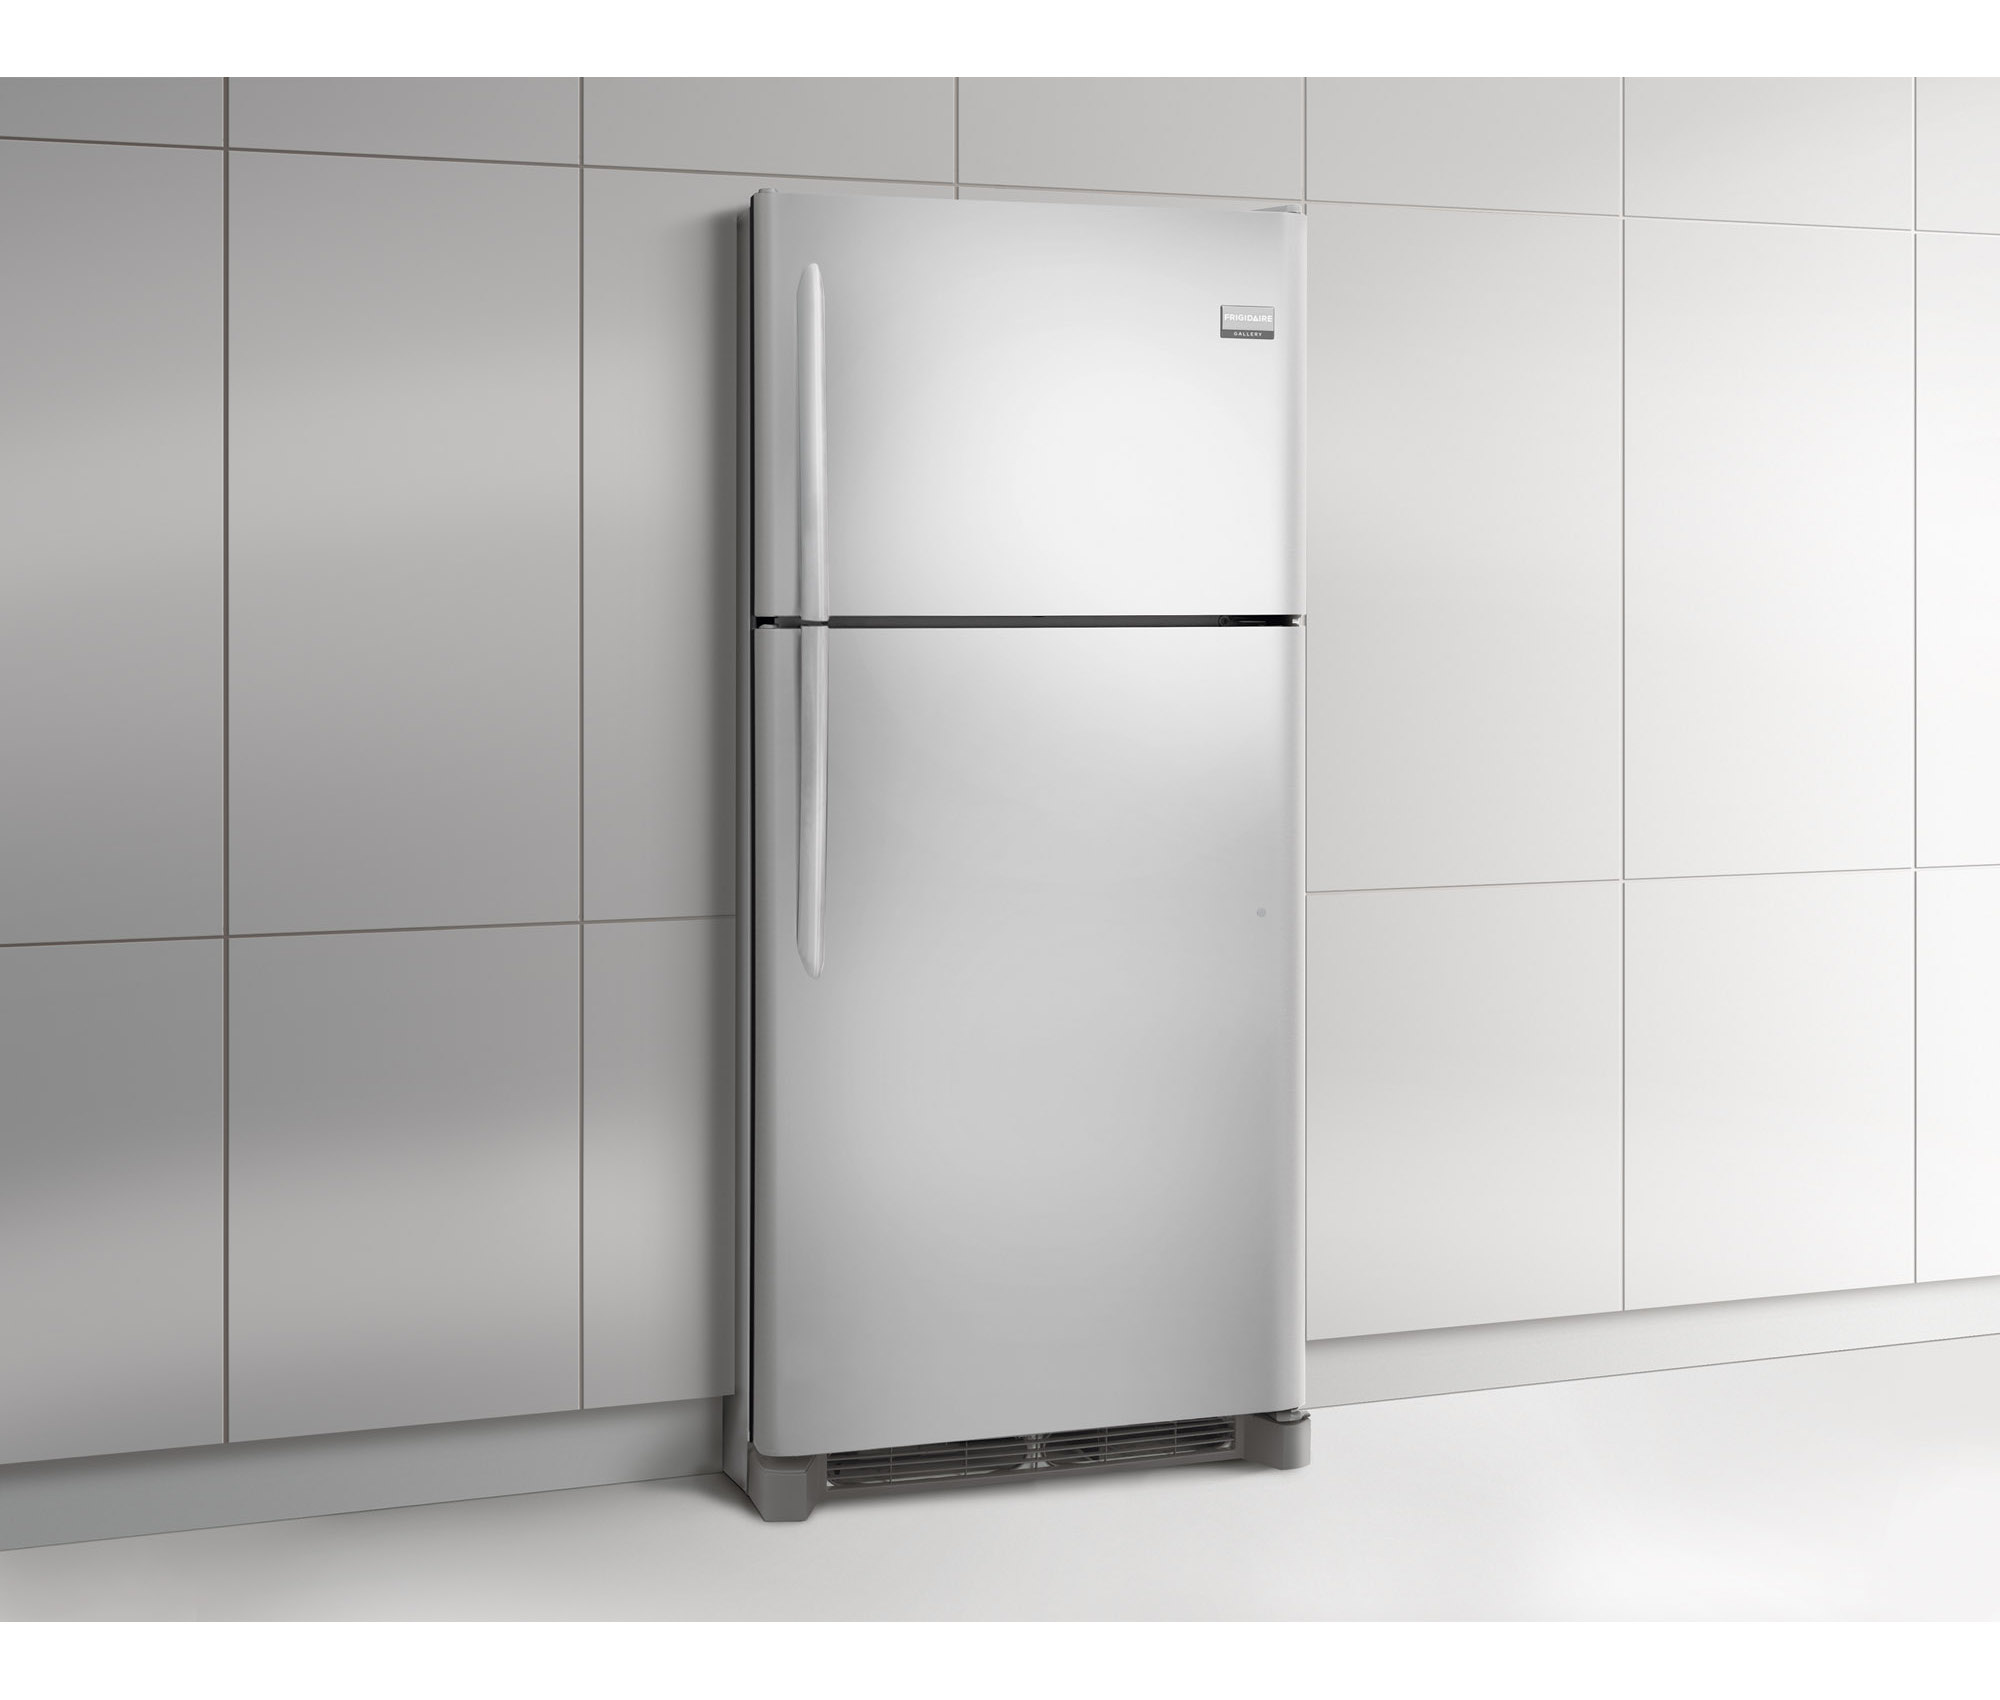 Frigidaire Gallery FGTR2044QF 20.4 cu. ft. Top Freezer Refrigerator - Stainless Steel